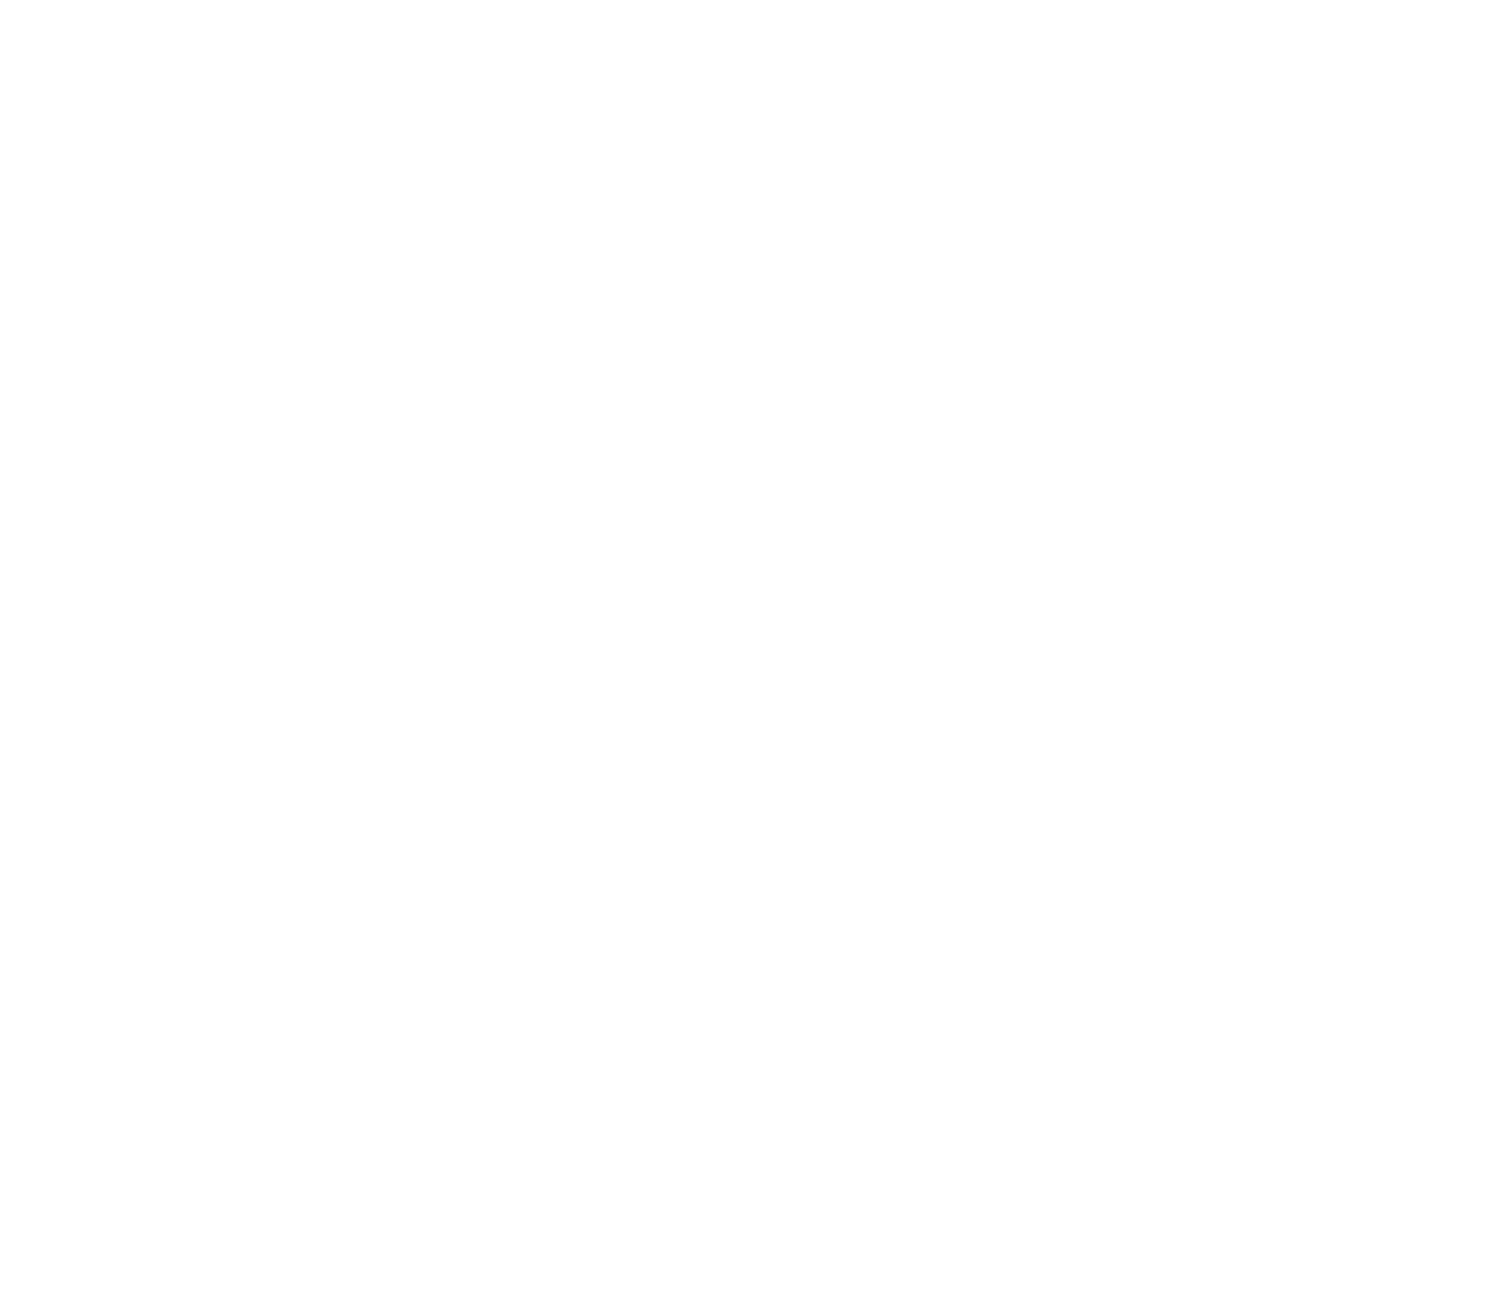 Union Square Foundation